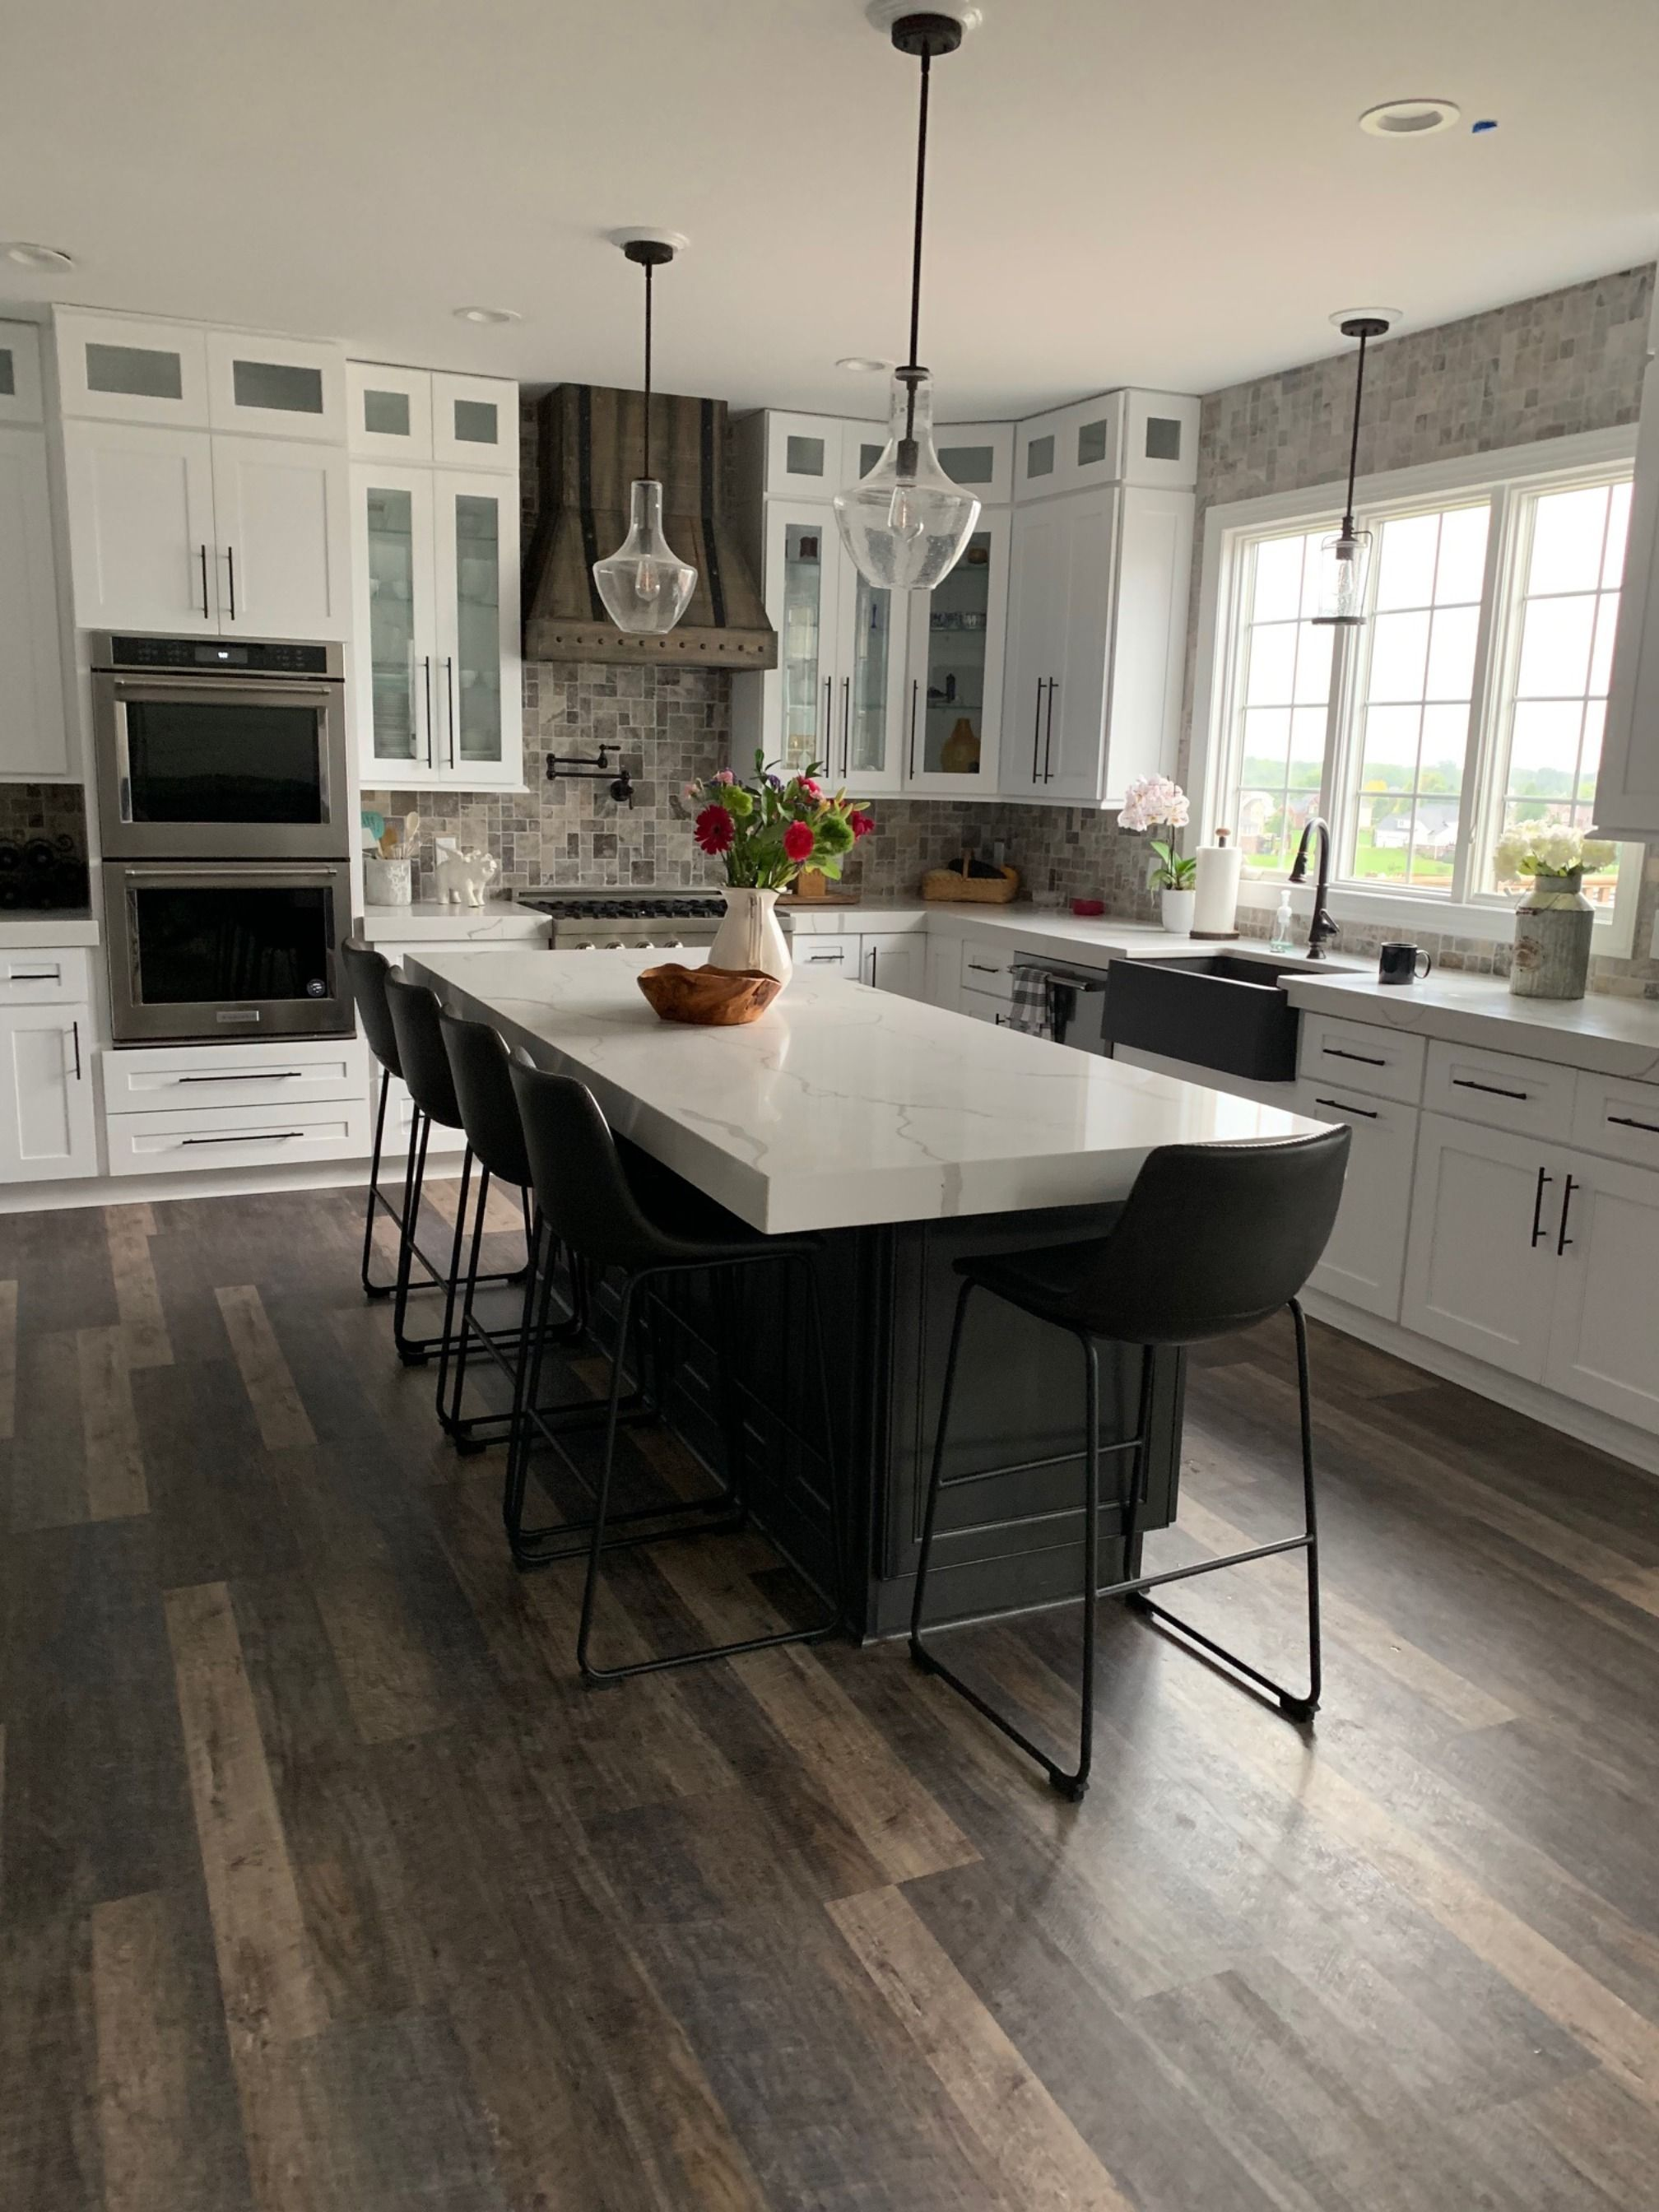 This beautiful customer kitchen features our white shaker